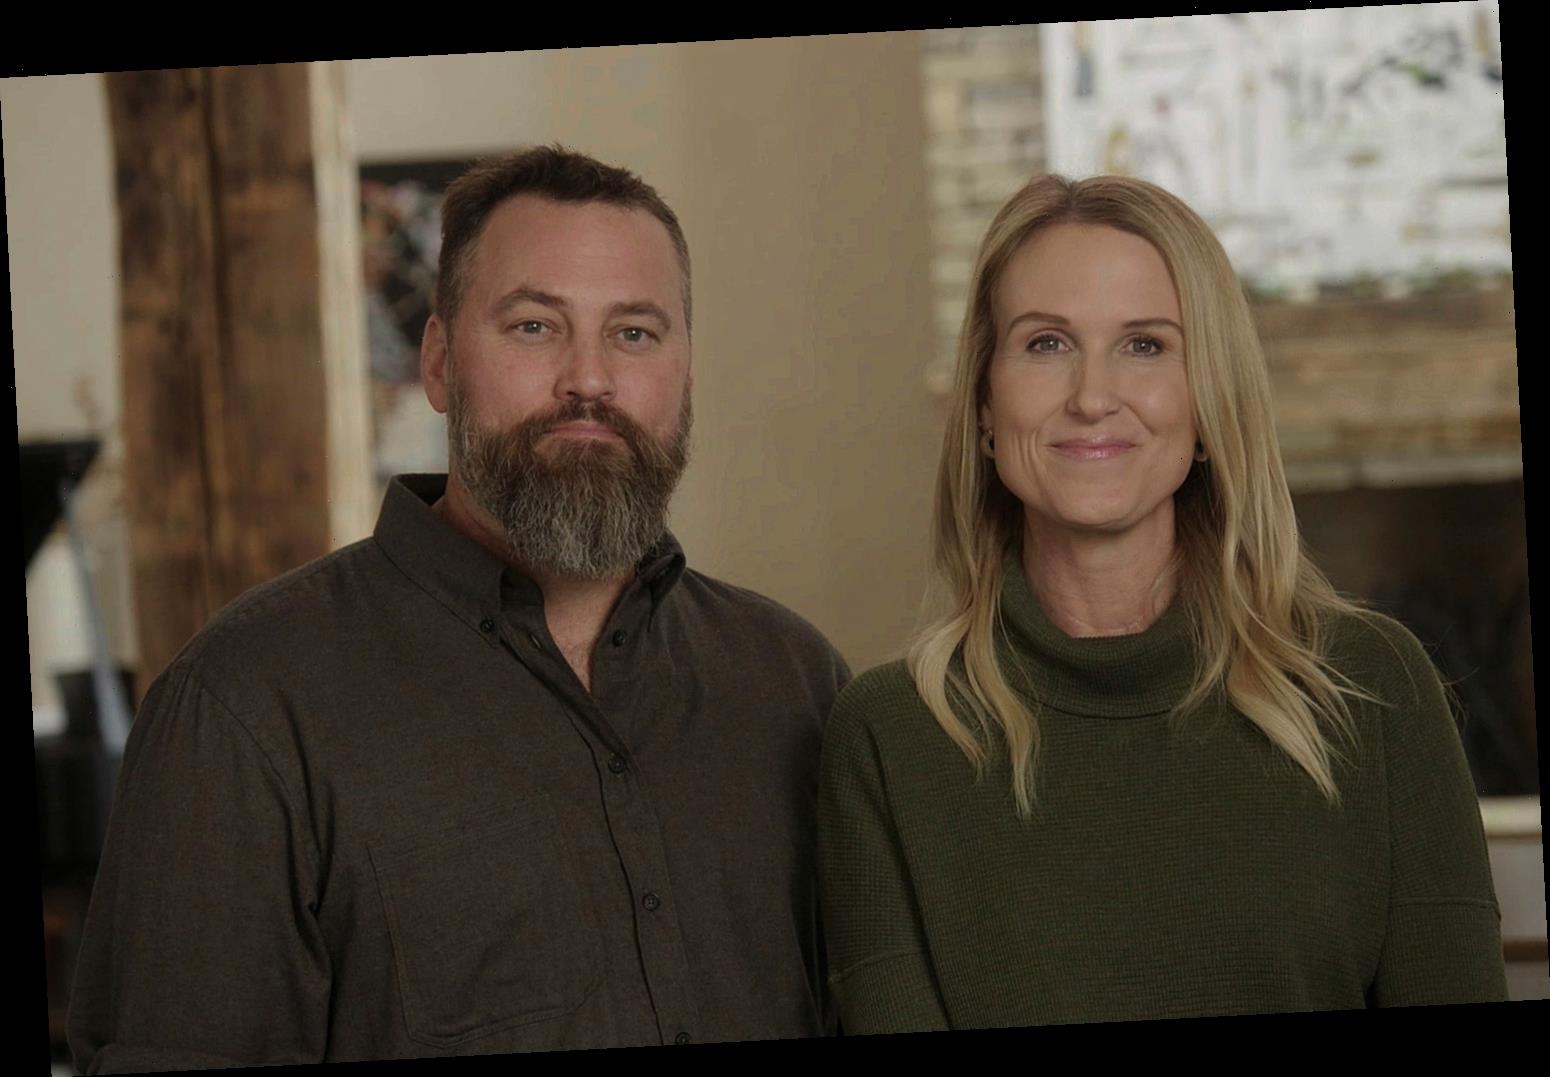 Duck Dynasty's Willie and Korie Robertson Launching Talk Show, At Home with the Robertsons